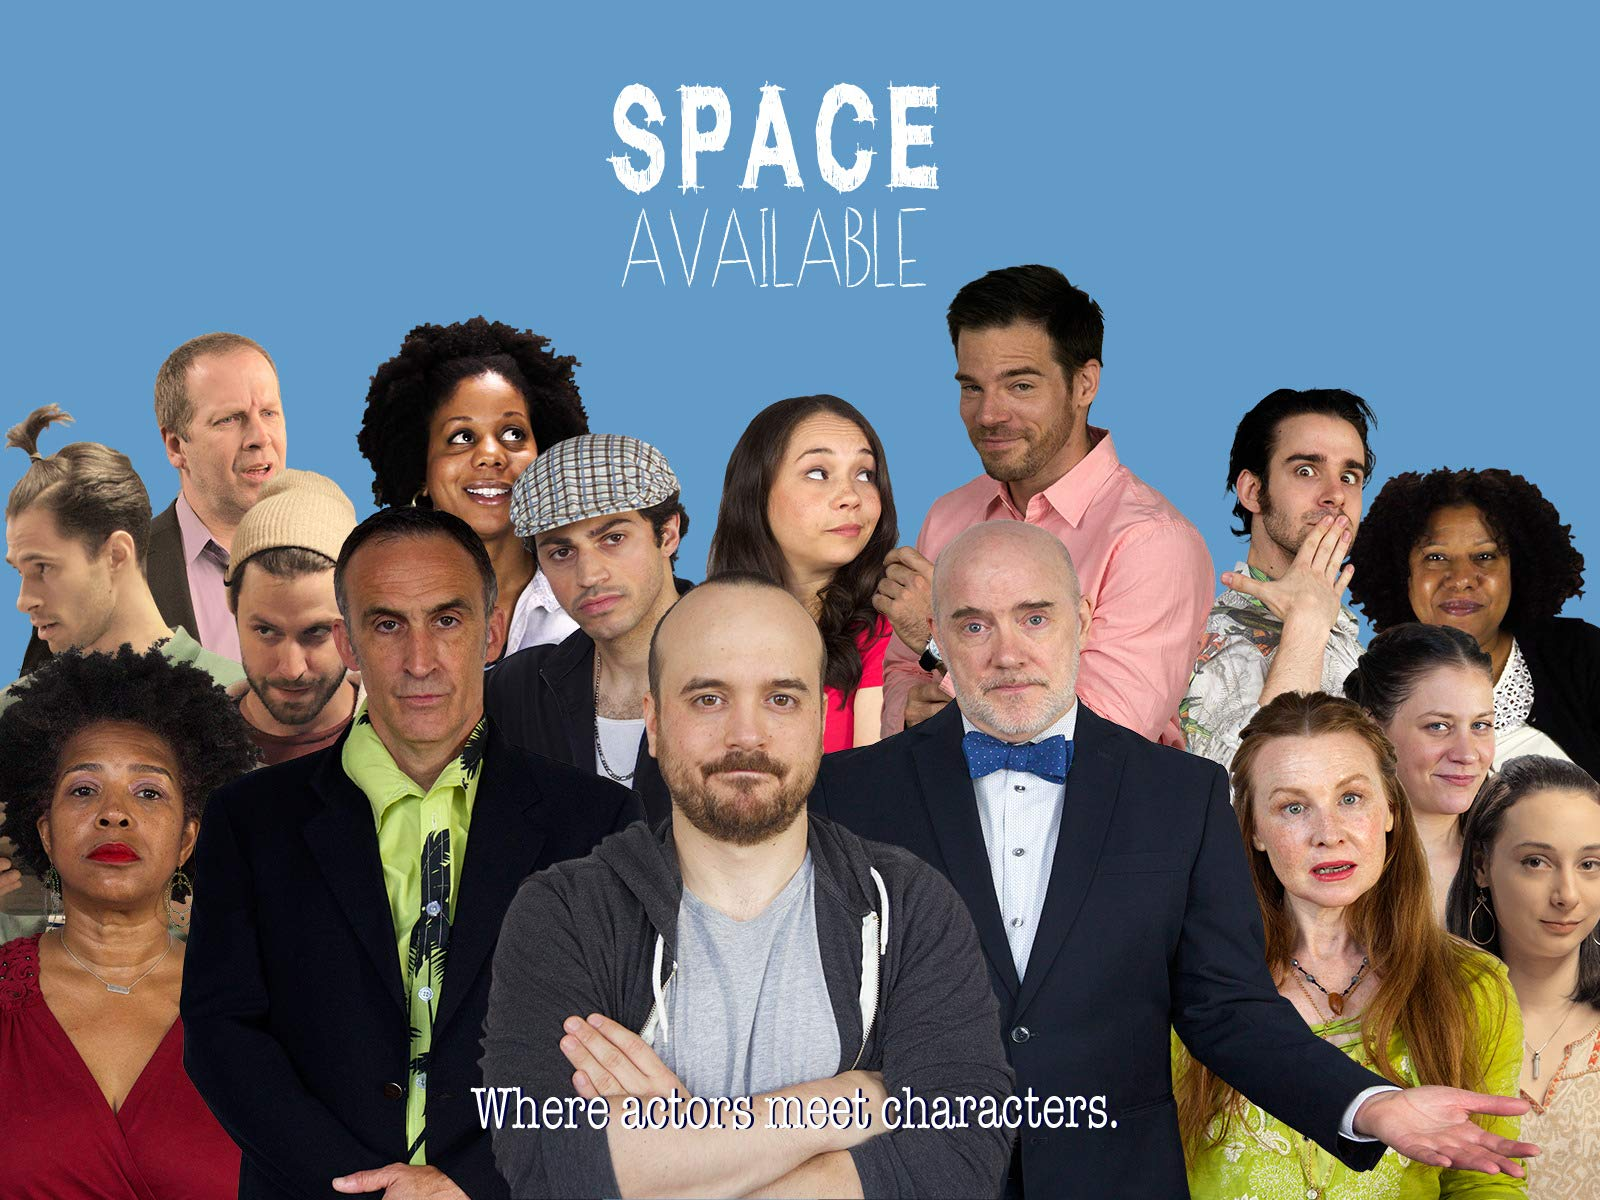 Clip: Space Available